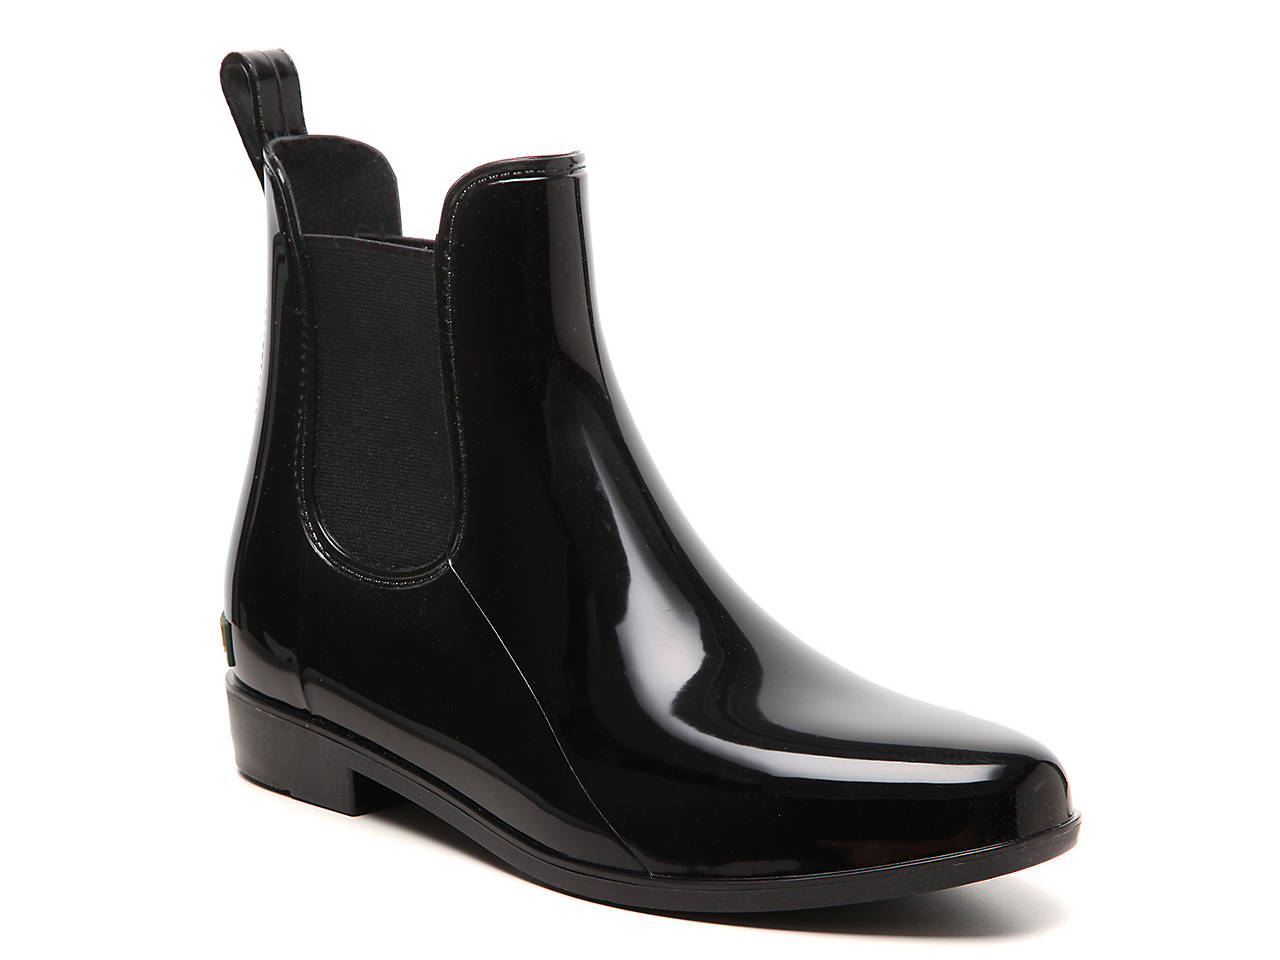 selected material compare price wide selection of colours and designs Tally Rain Boot